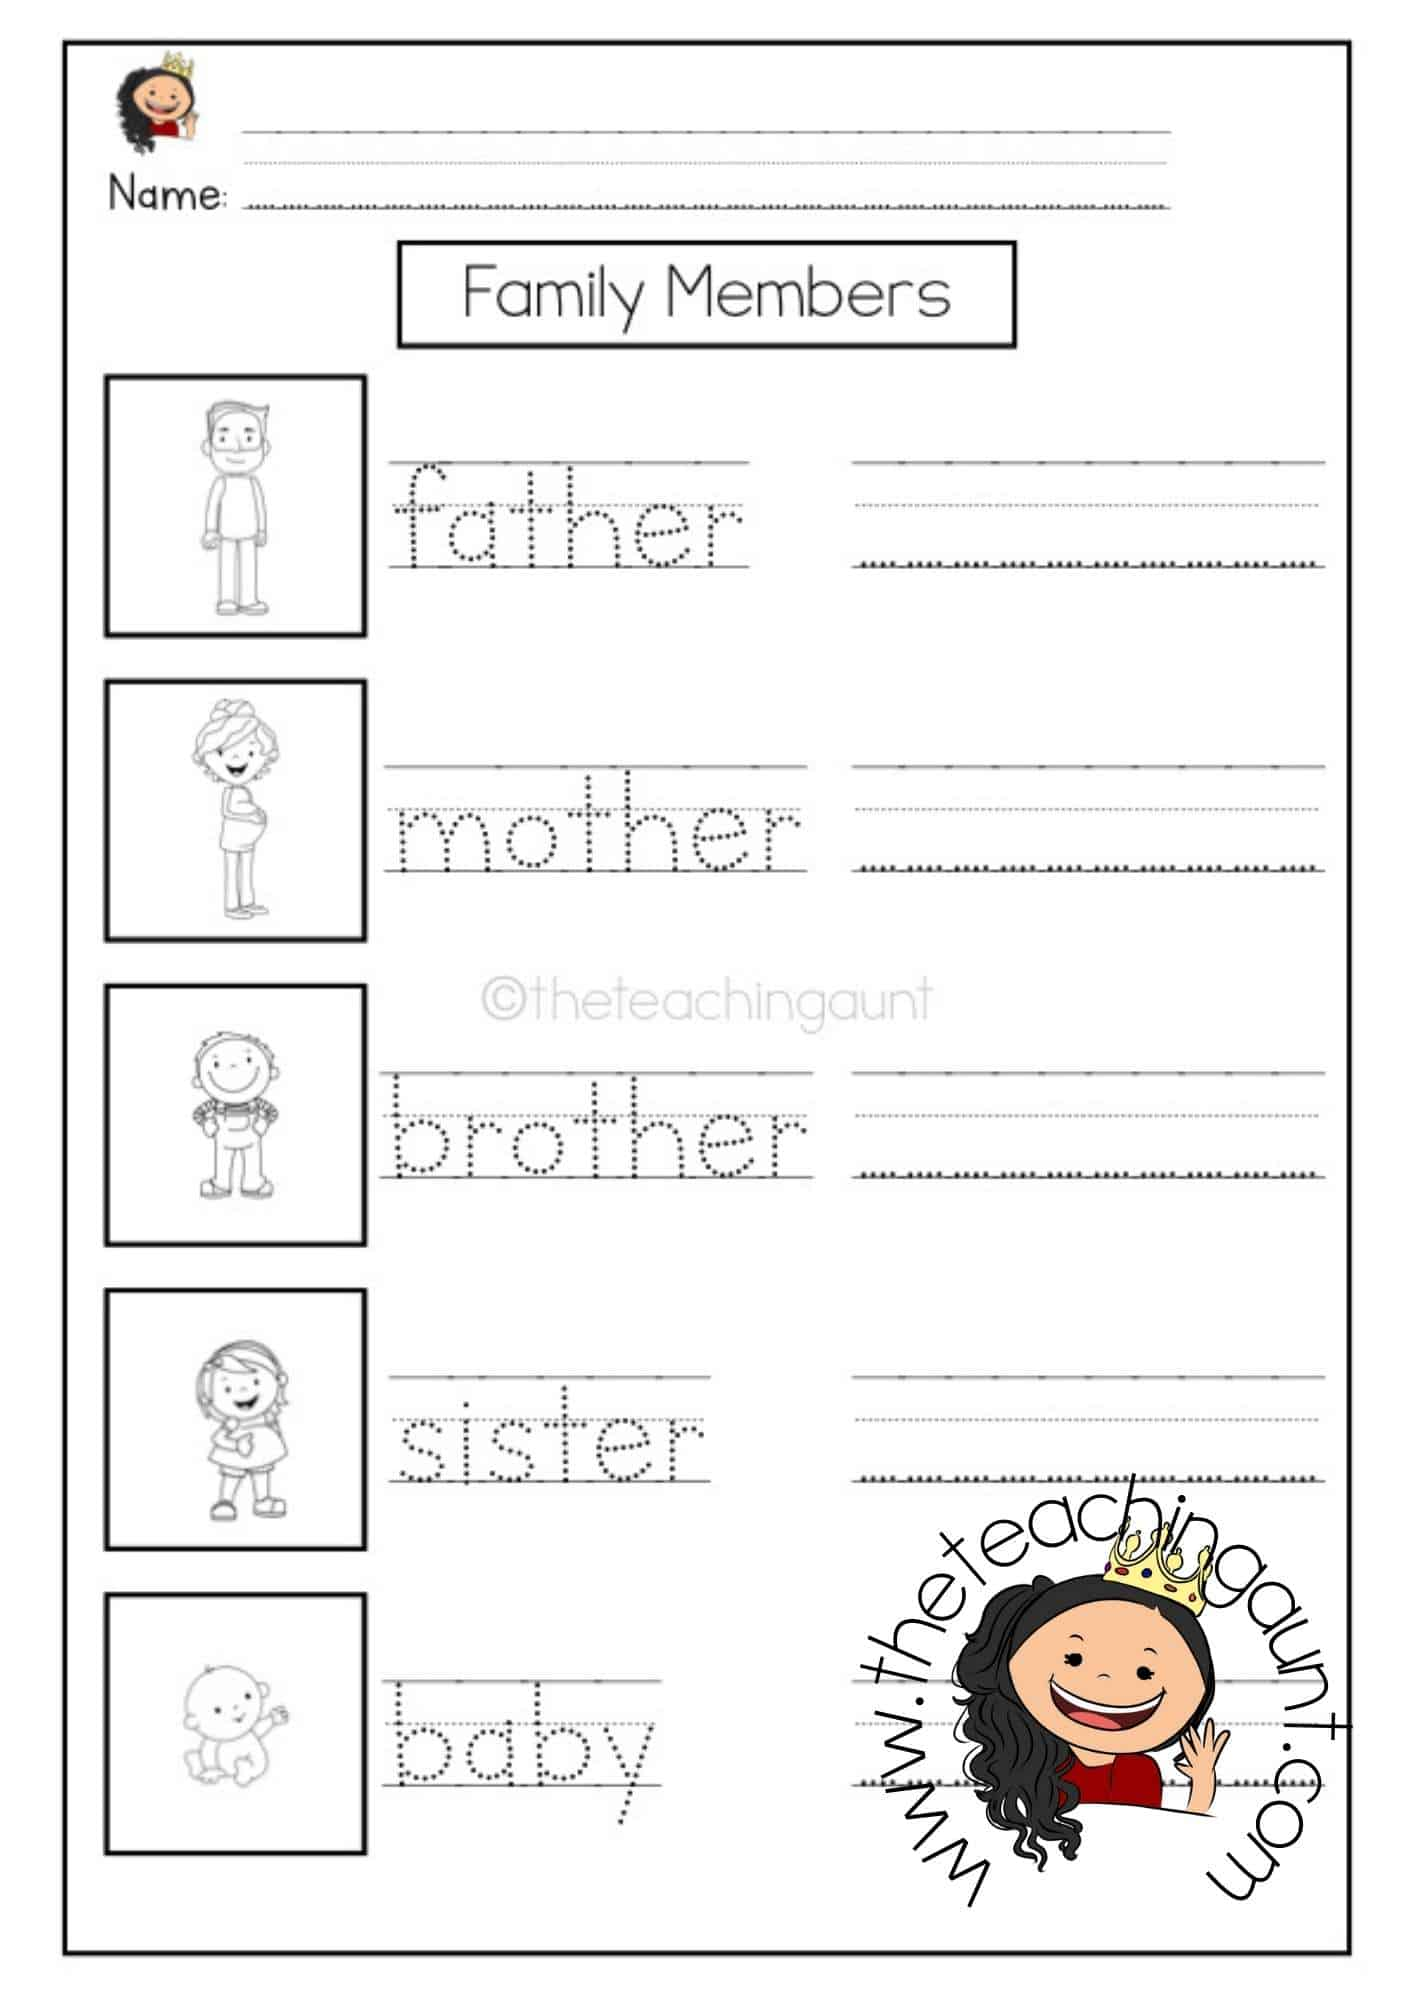 Free Family Members Tracing and Writing Worksheets from The Teaching Aunt